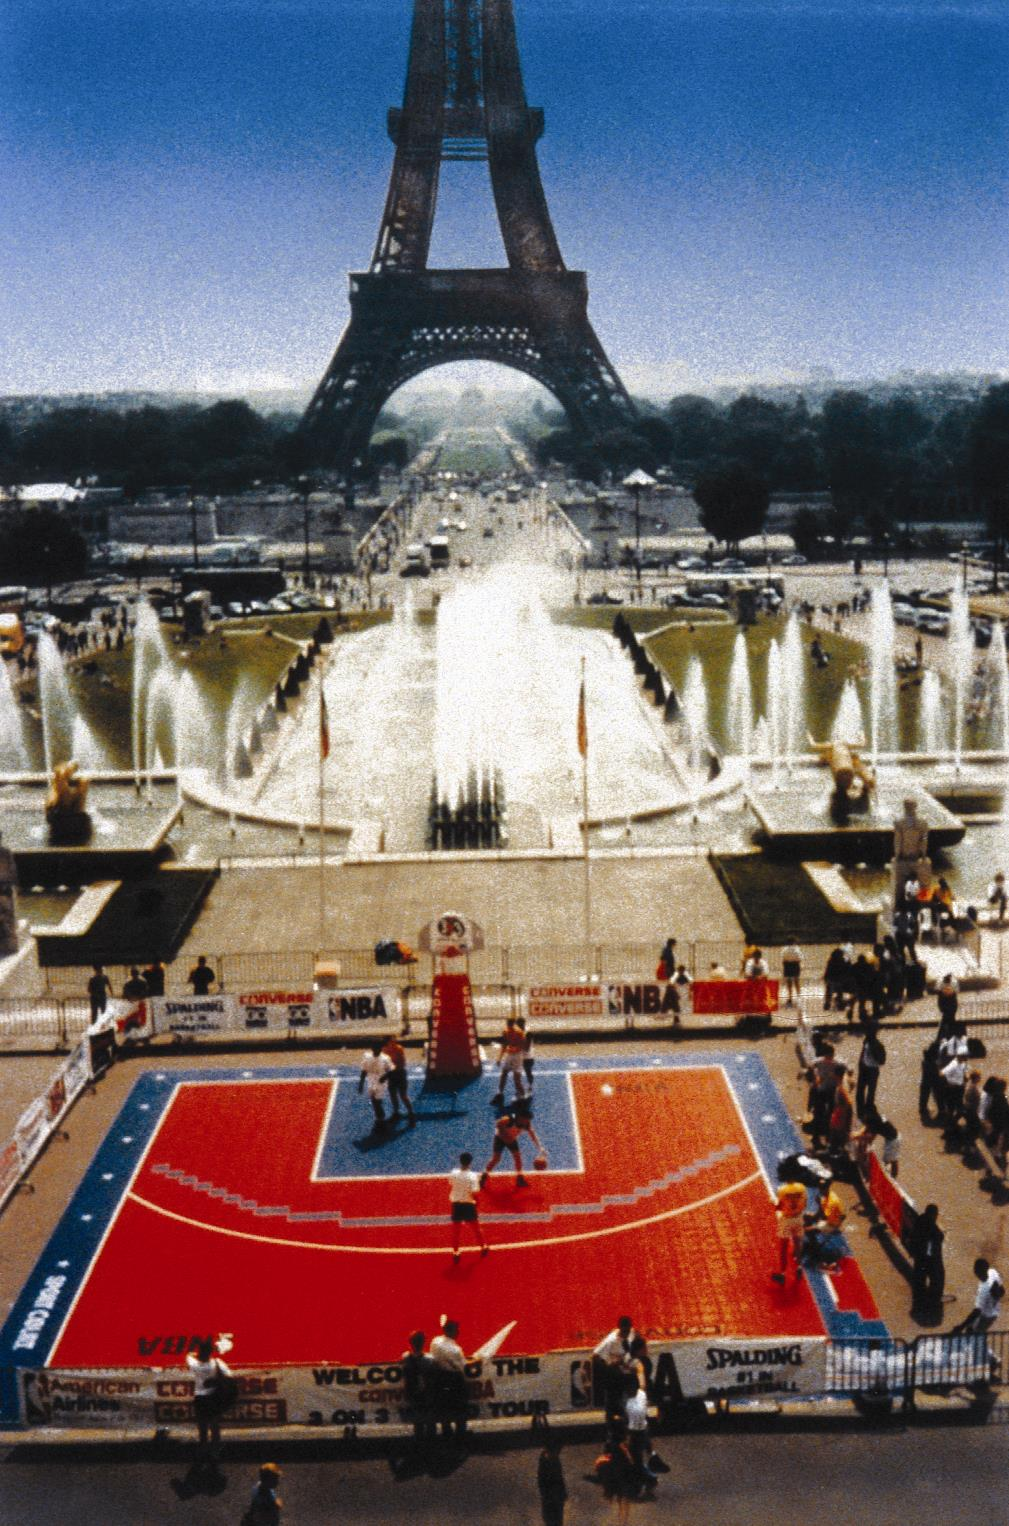 NBA Basketball on Sport Court in Paris